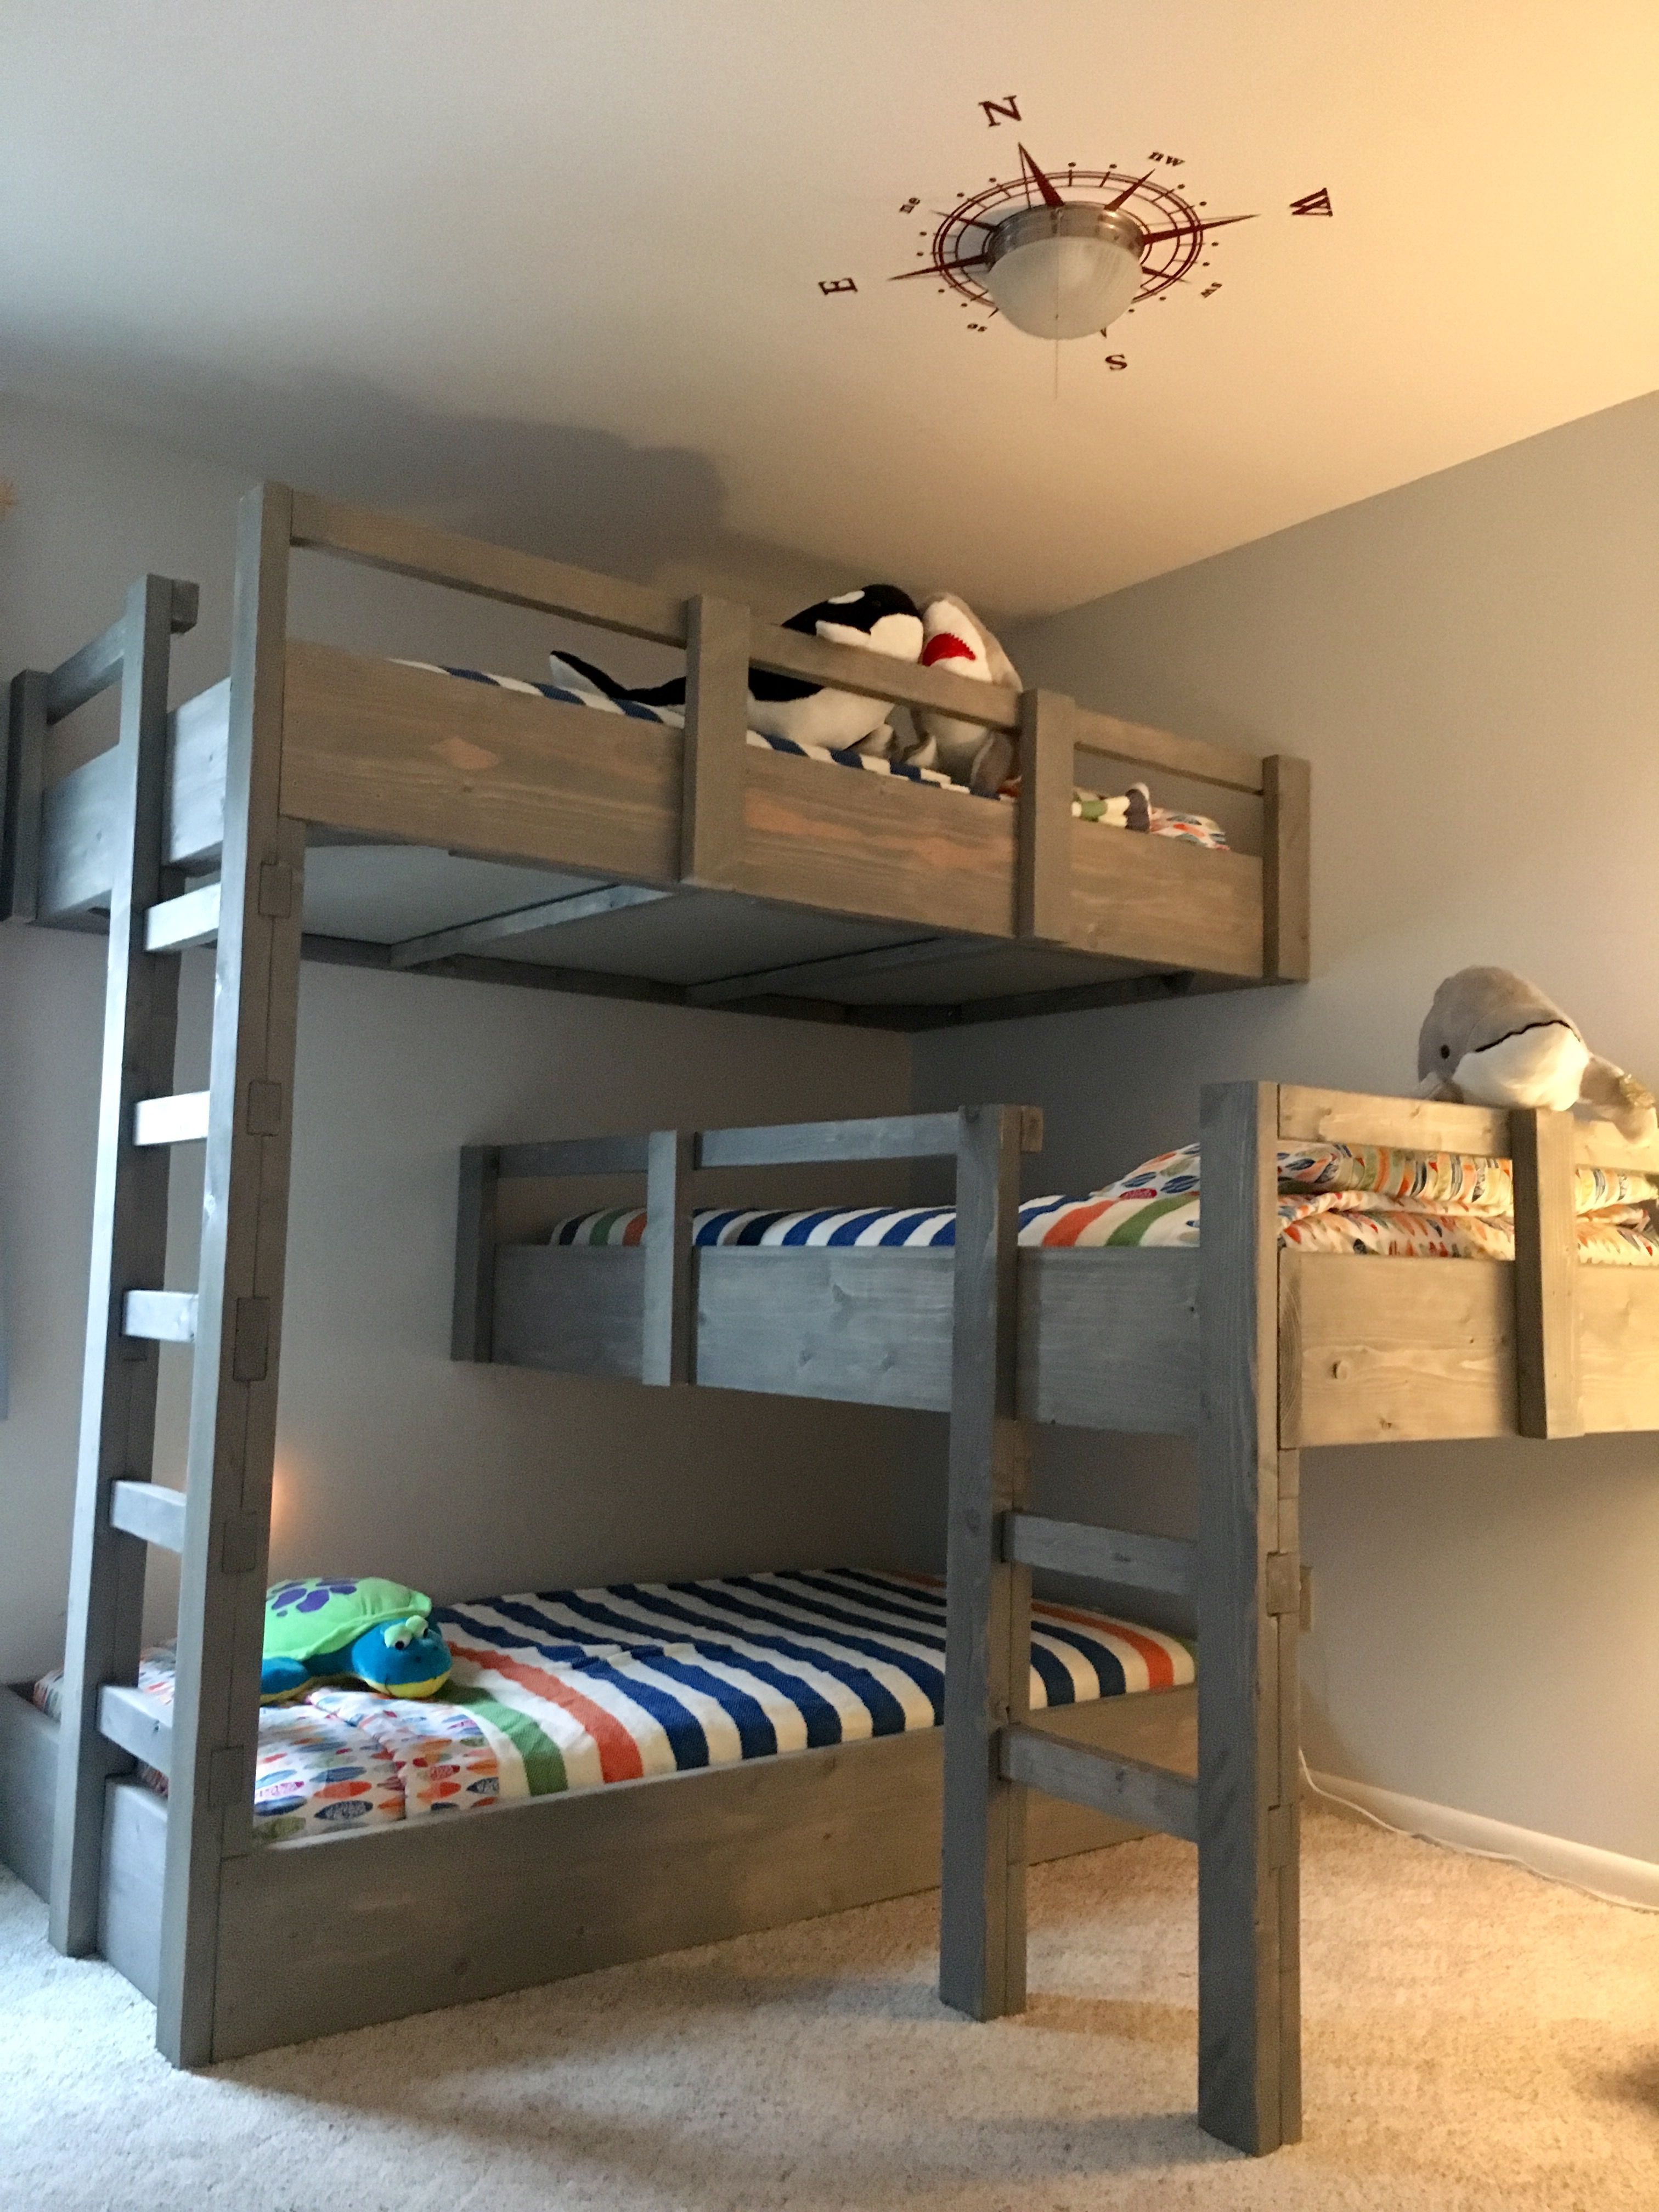 5 wonderful ideas of triple bunk beds for your kids on wonderful ideas of bunk beds for your kids bedroom id=22092